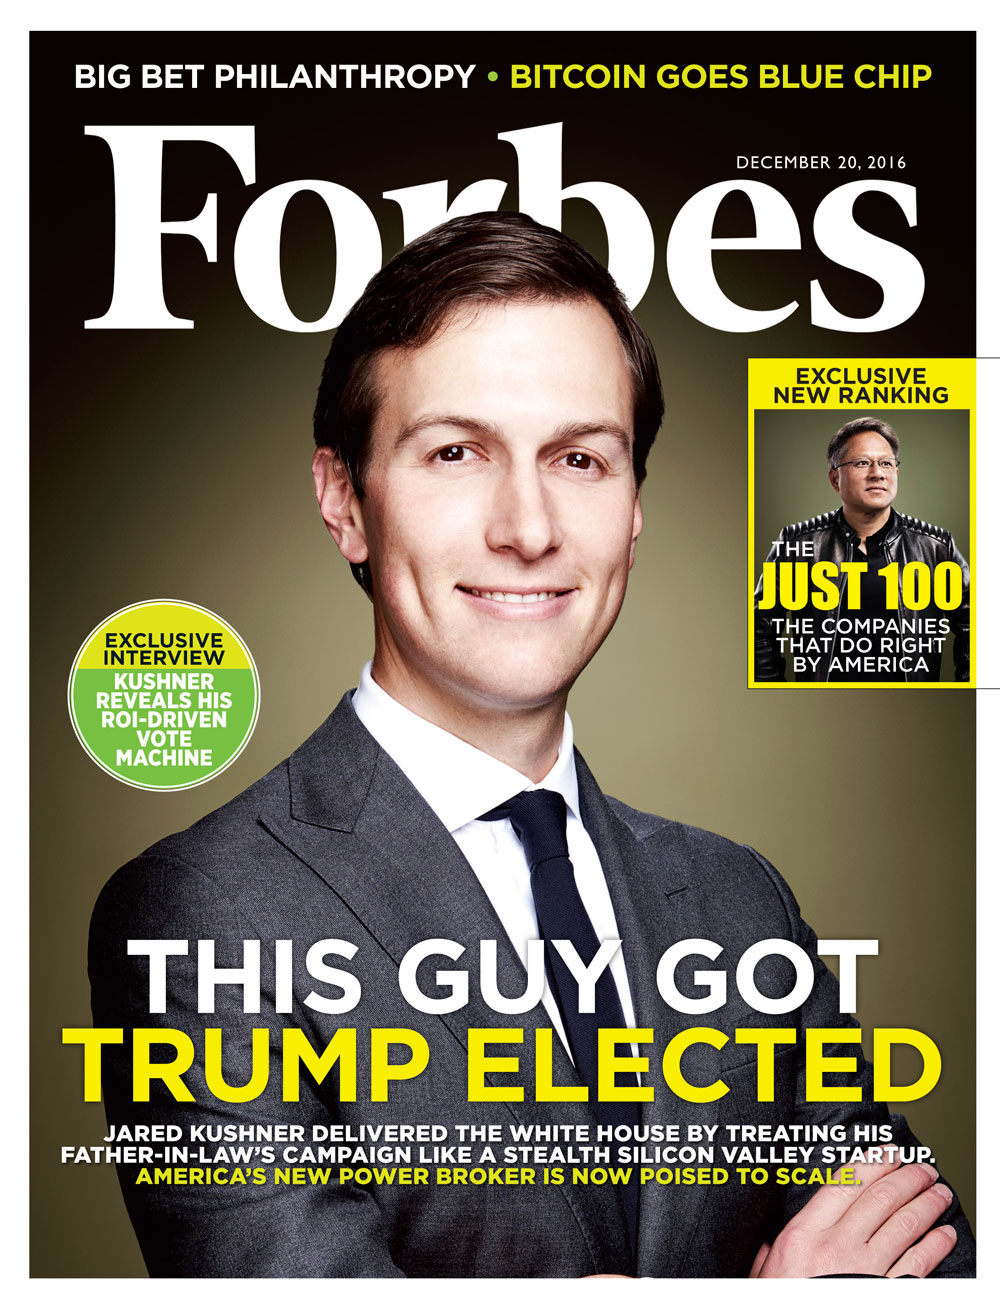 forbes-cover-12202016-final_1000x1311.jpg